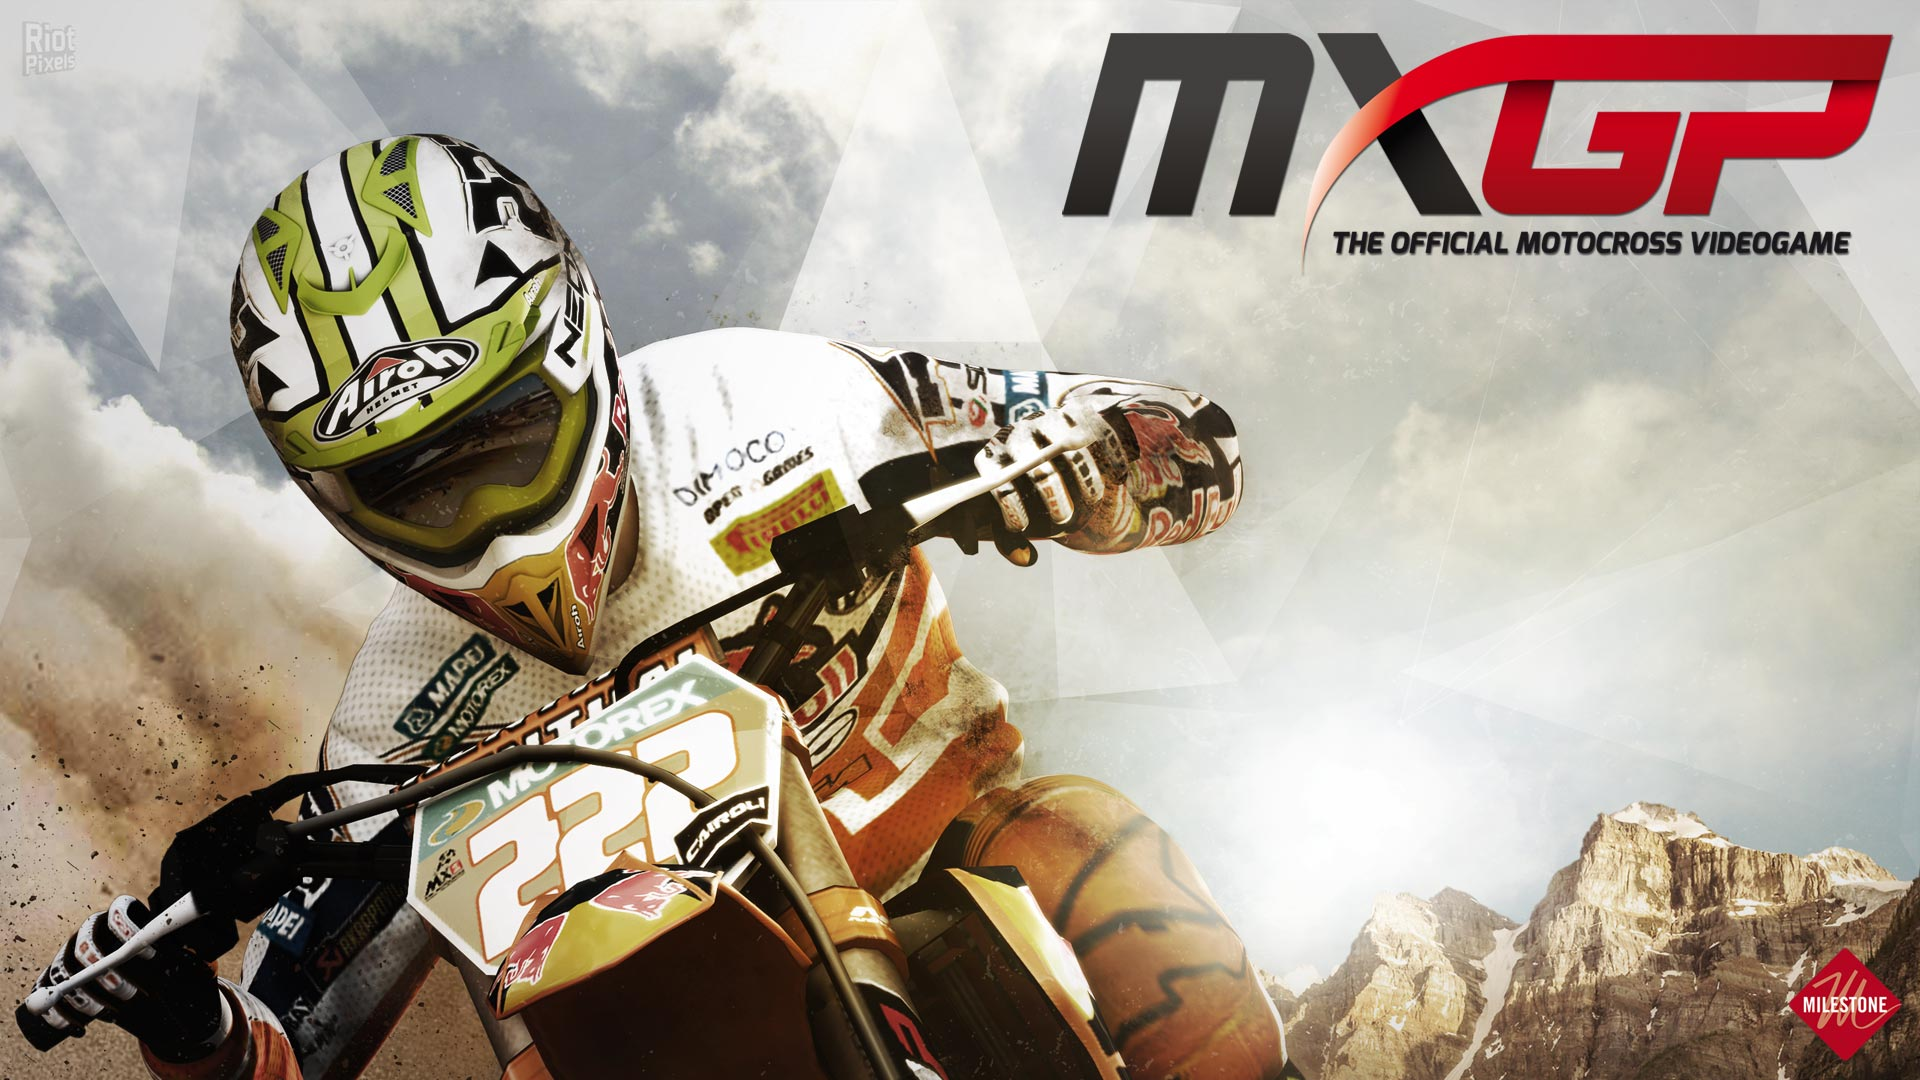 Mxgp the Official Motocross Videogame free download